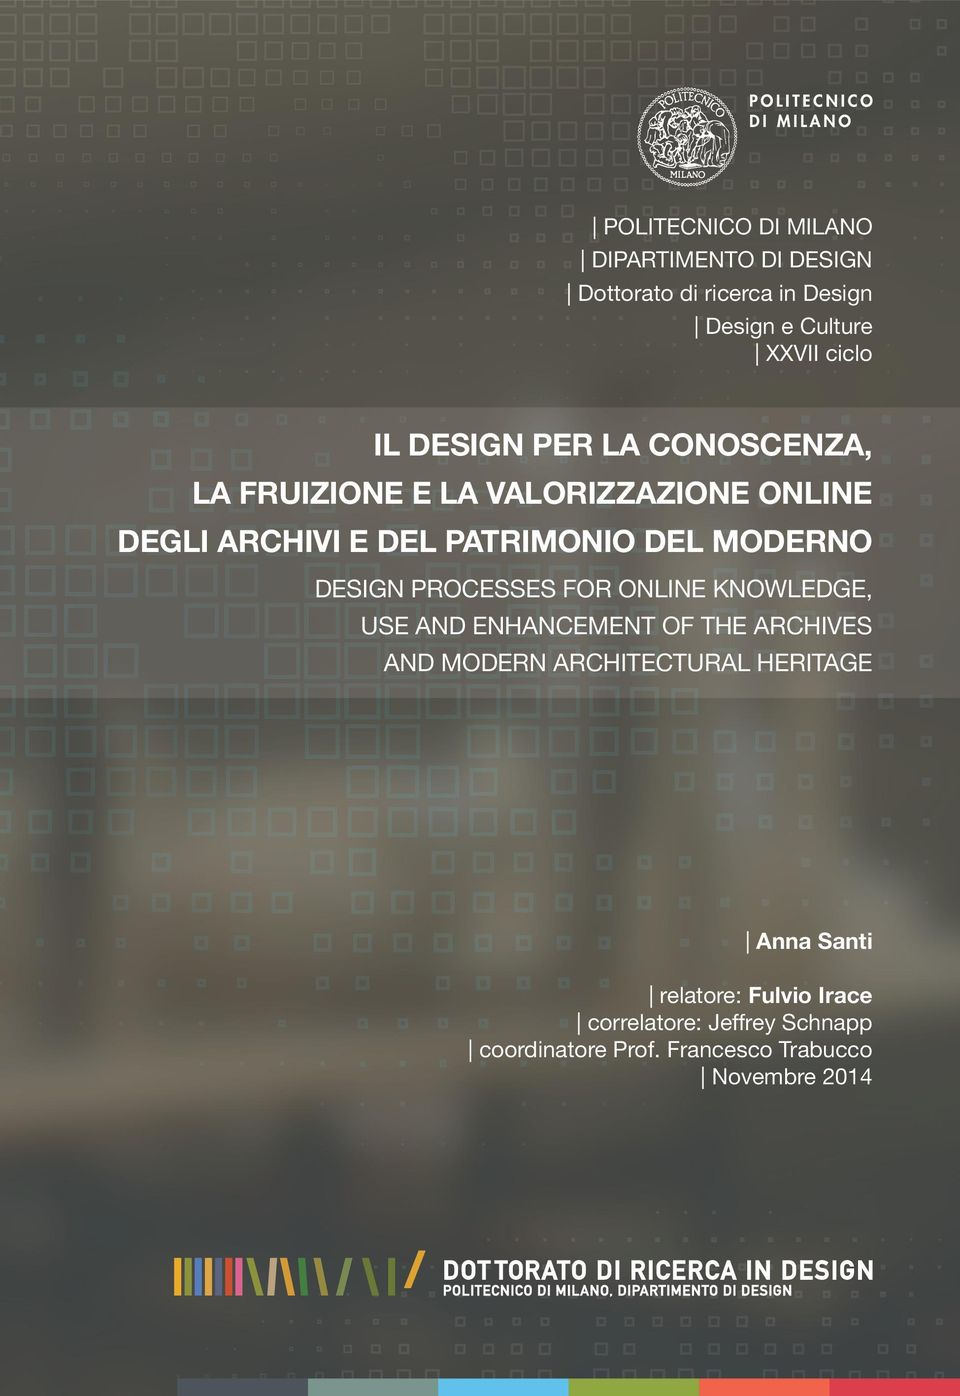 DESIGN PROCESSES FOR ONLINE KNOWLEDGE, USE AND ENHANCEMENT OF THE ARCHIVES AND MODERN ARCHITECTURAL HERITAGE